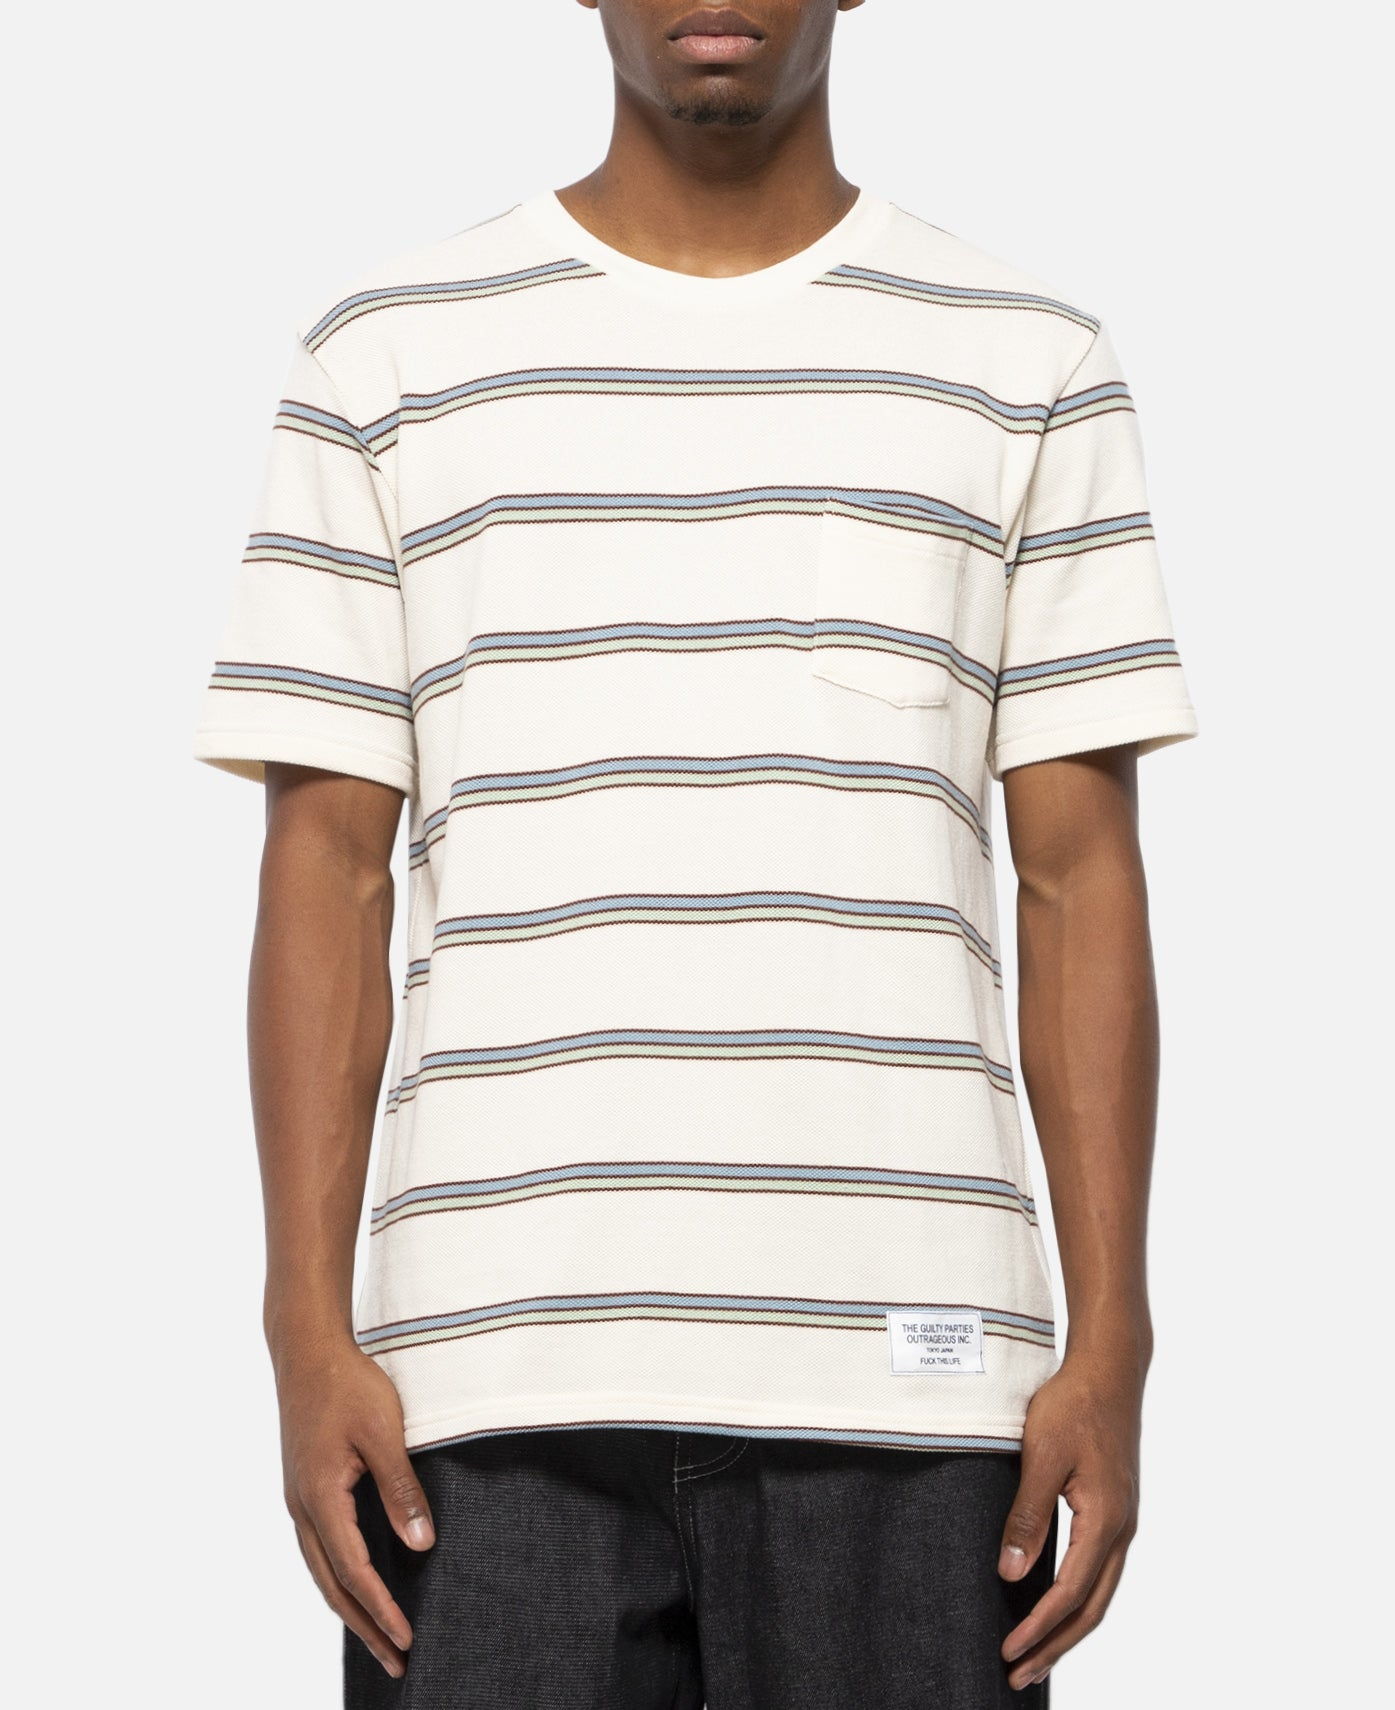 Striped Crew Neck T-Shirt (Type-2)